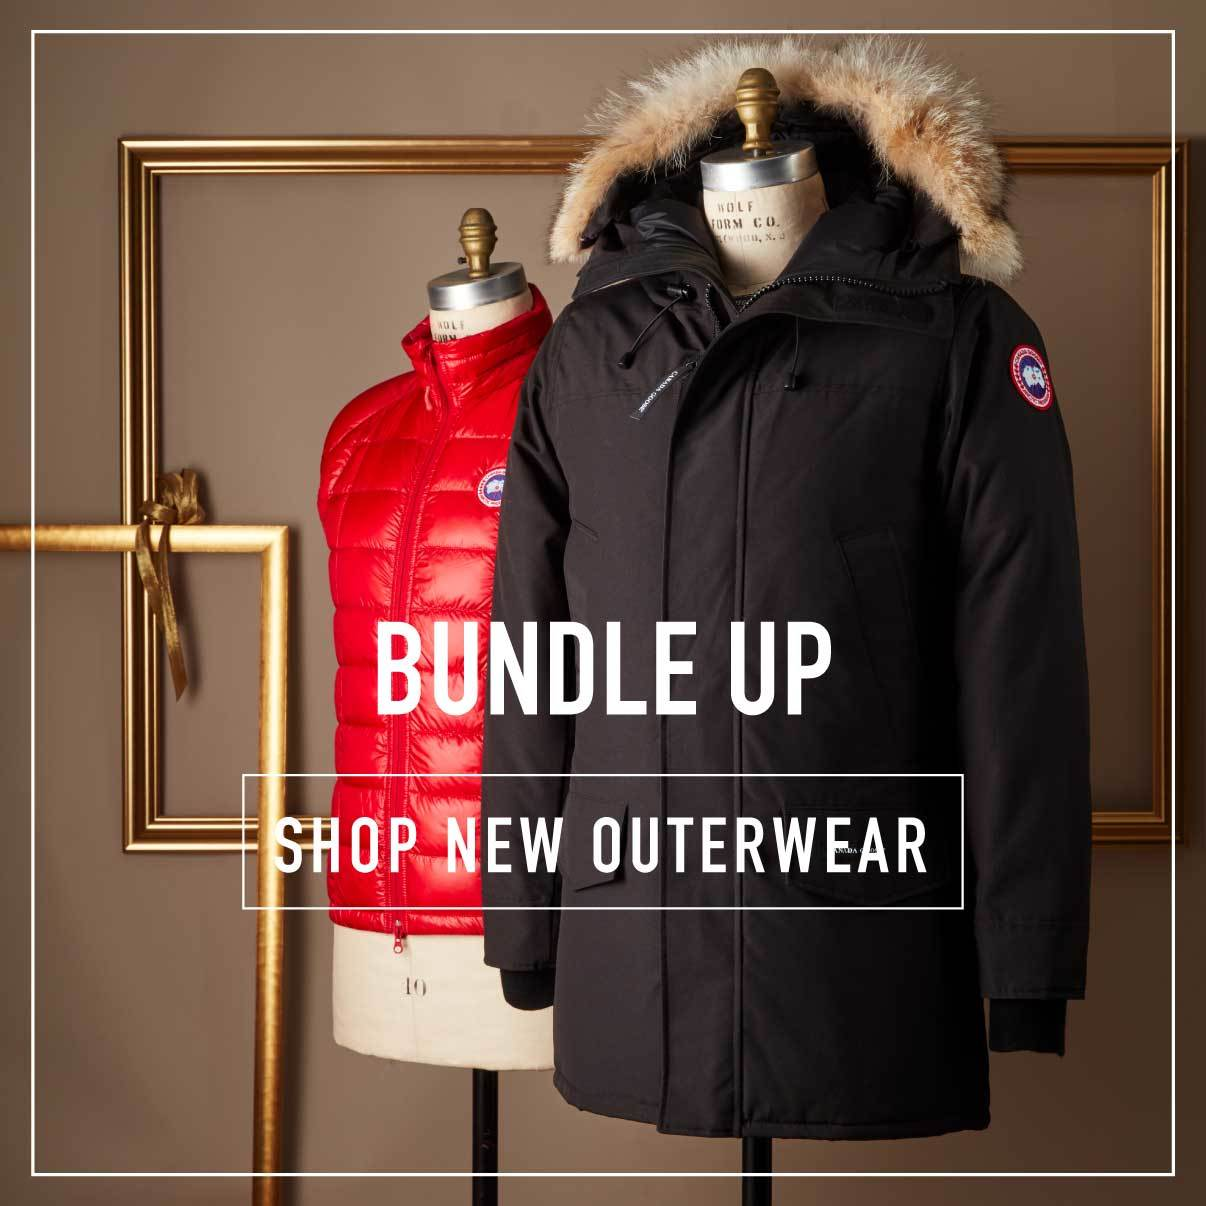 SHop new OUterwear